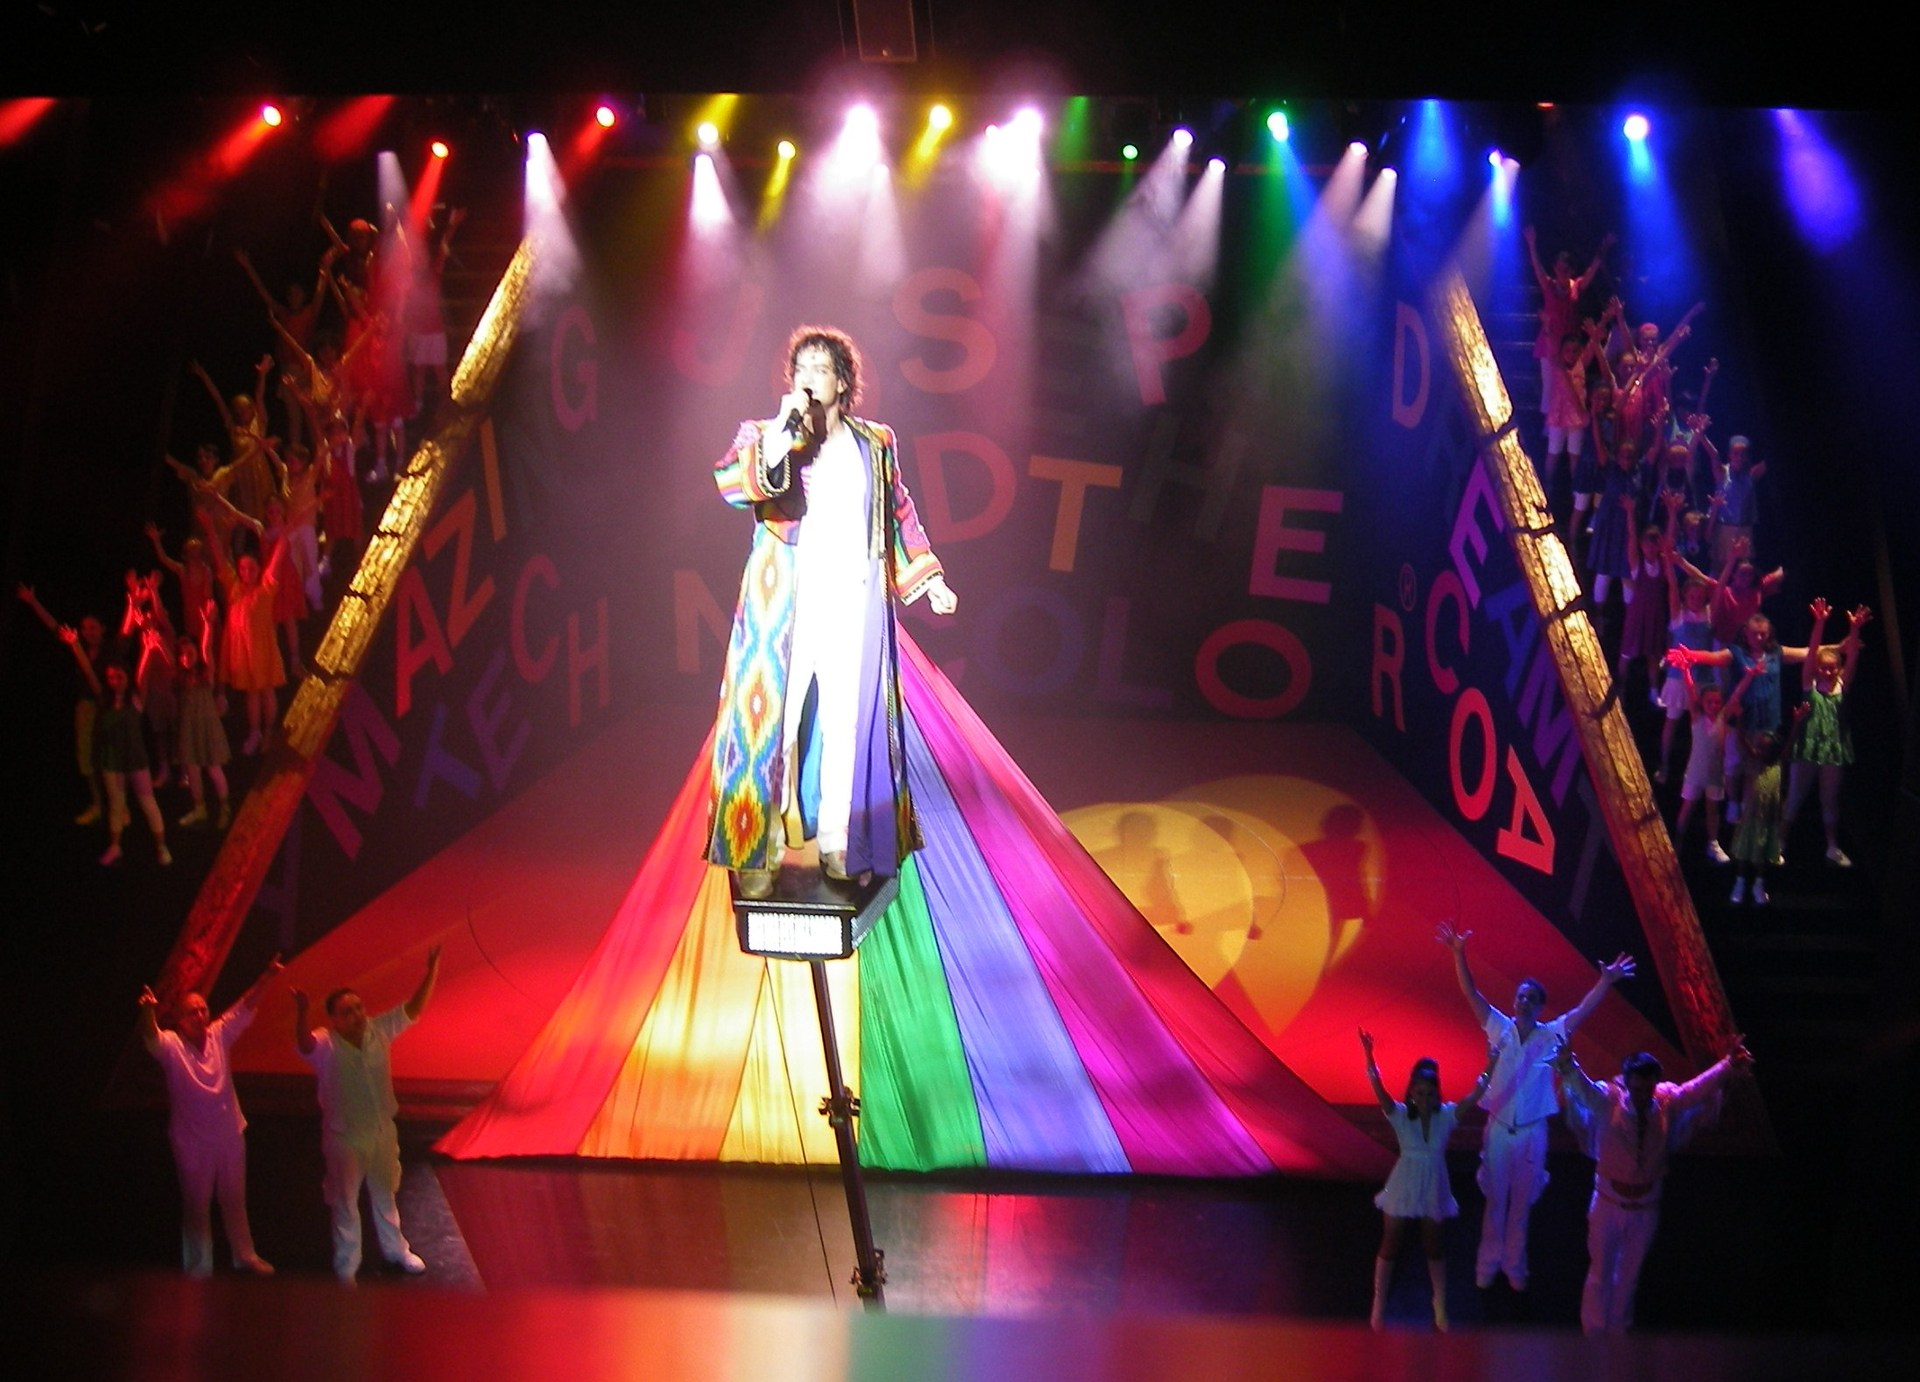 Joseph and the Amazing Technicolor Dreamcoat – The Courtyard Theatre